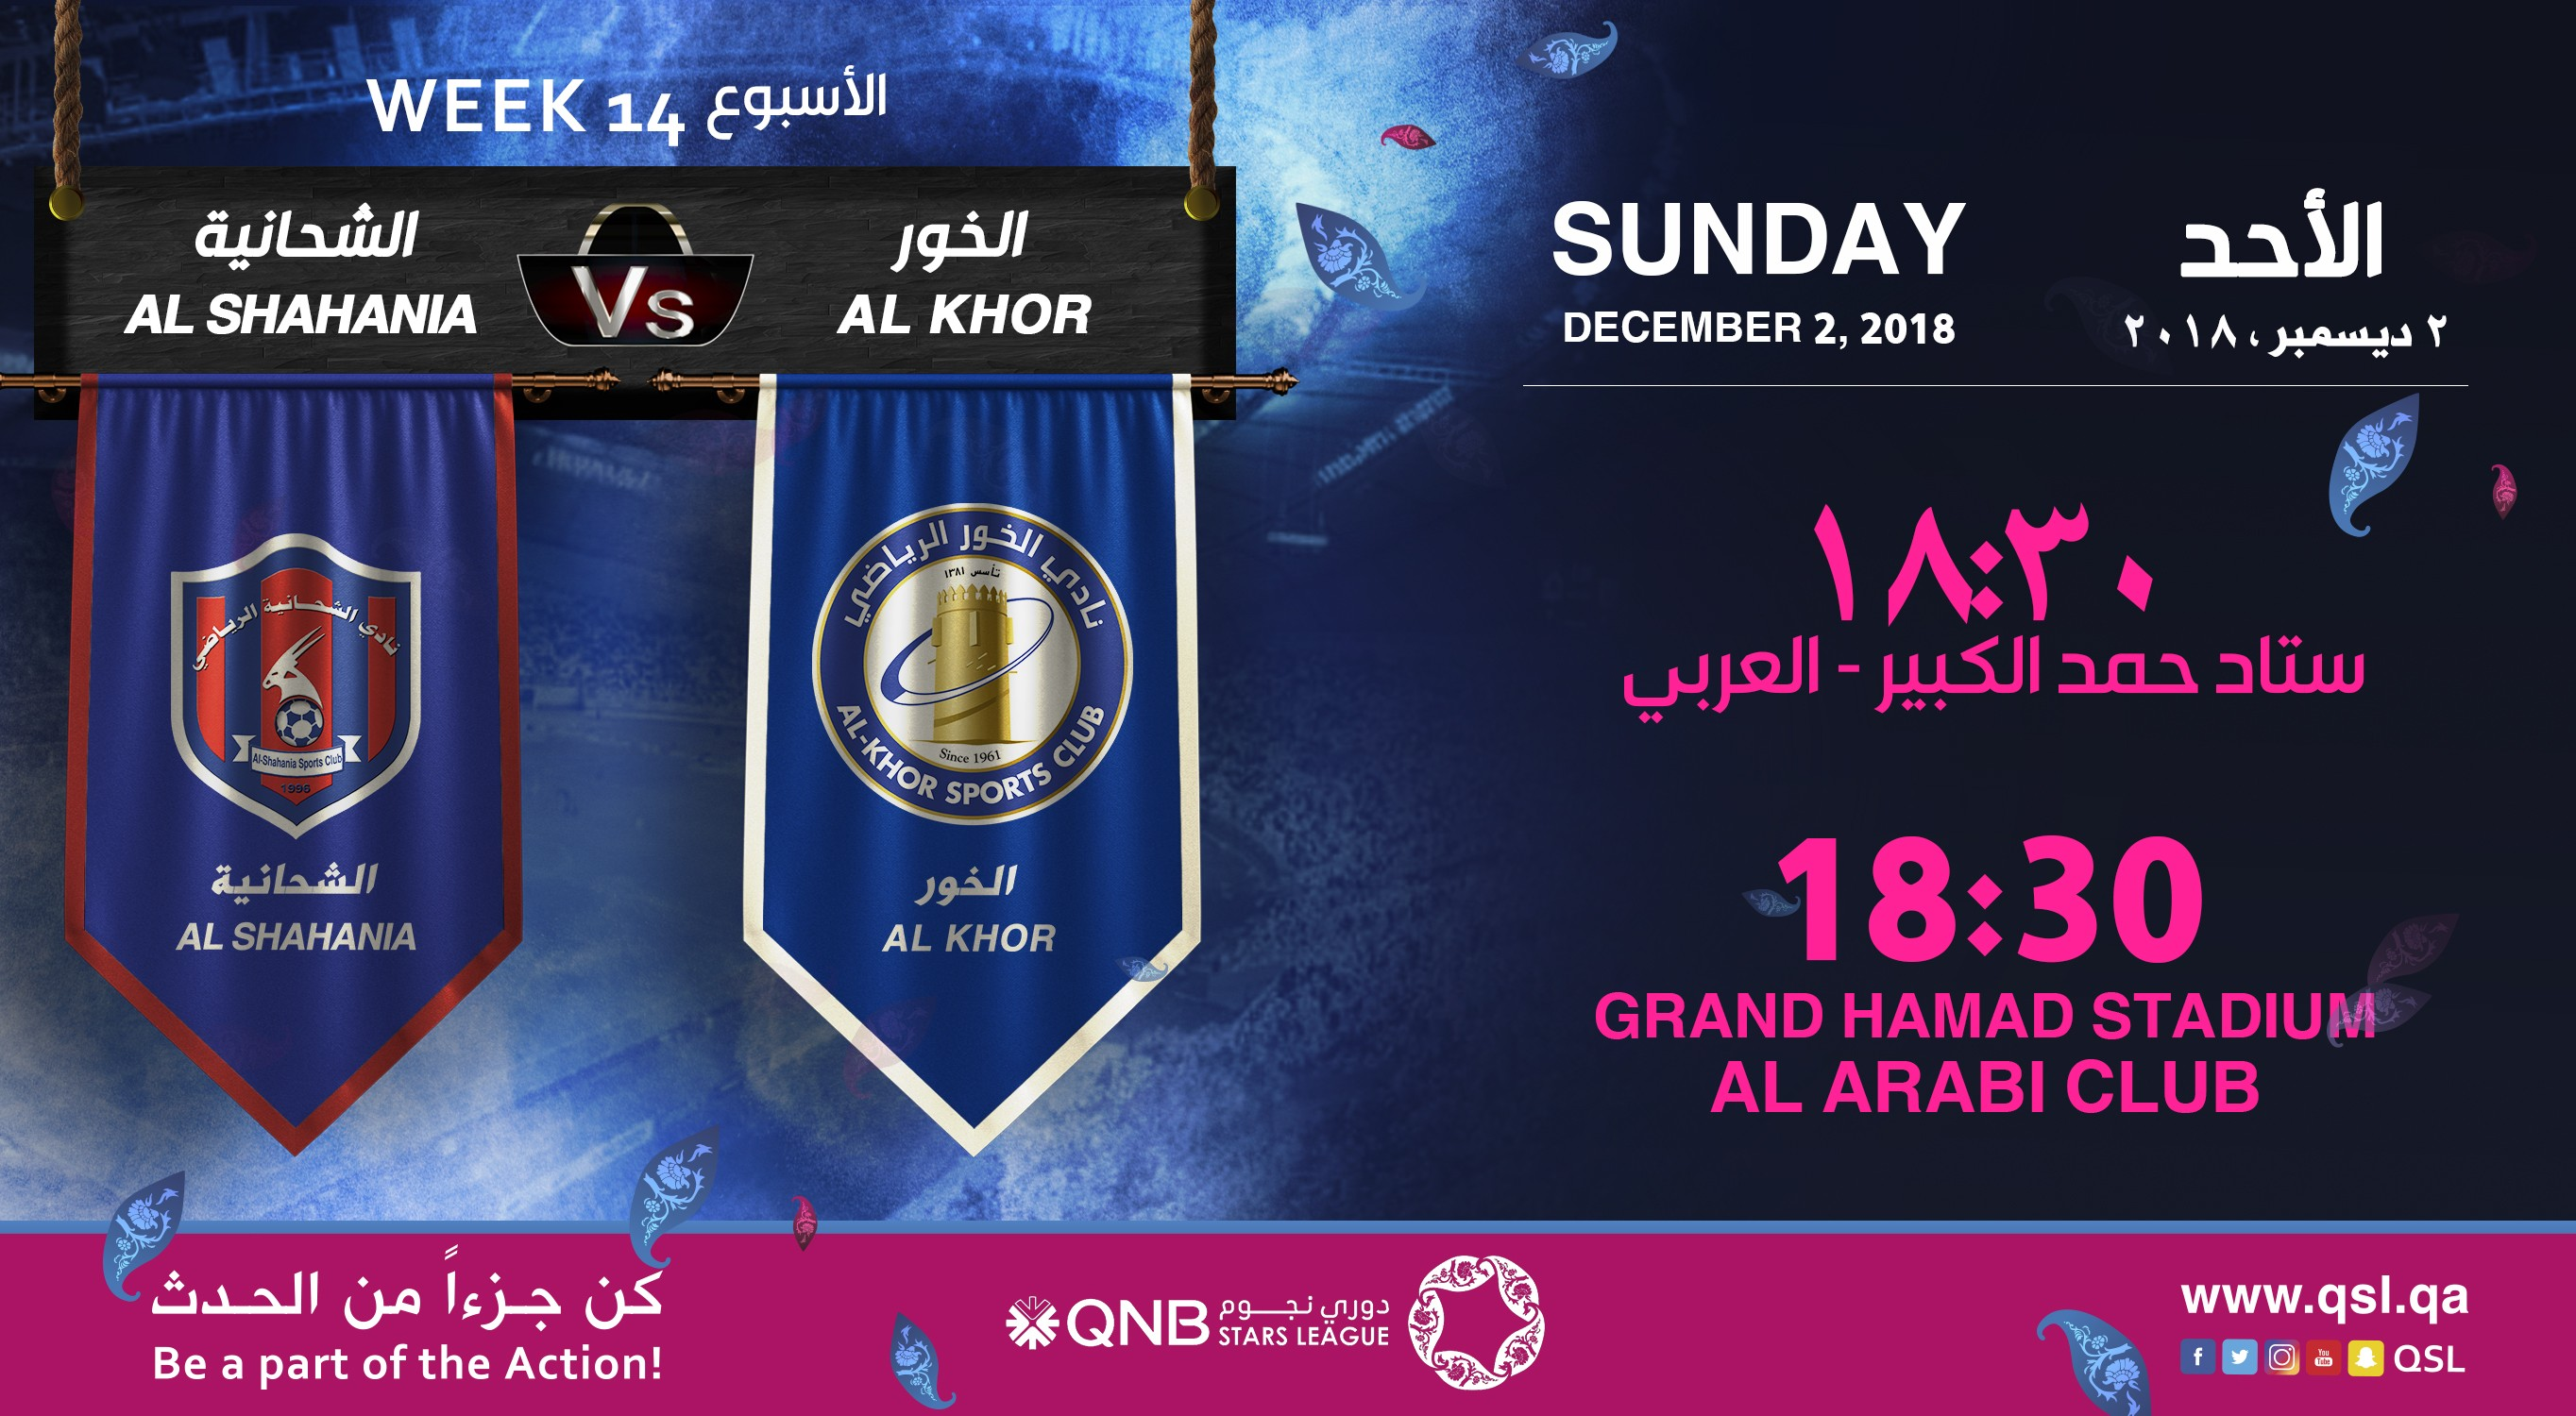 QNB Stars League Week 14 — Al Shahania vs Al Khor